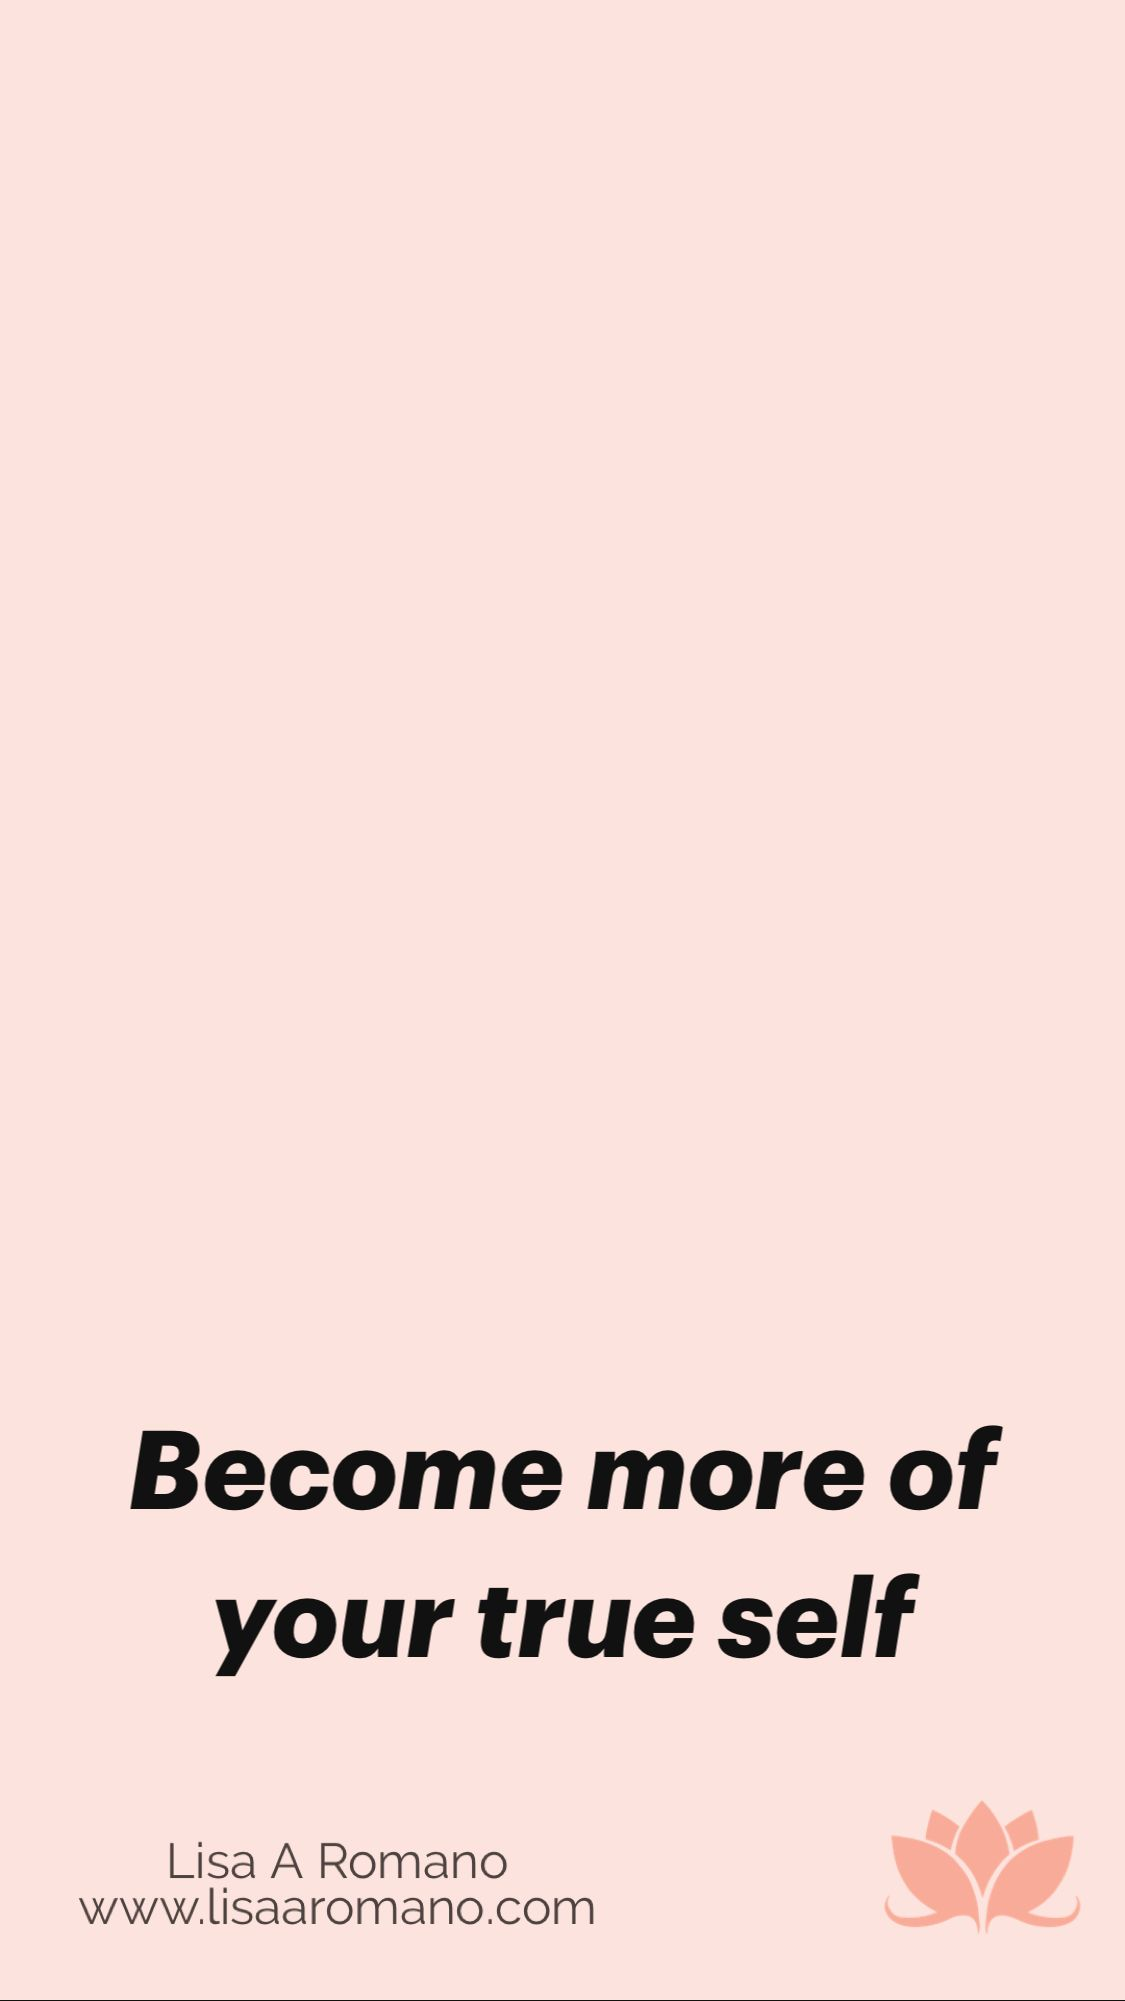 Become more of your true self